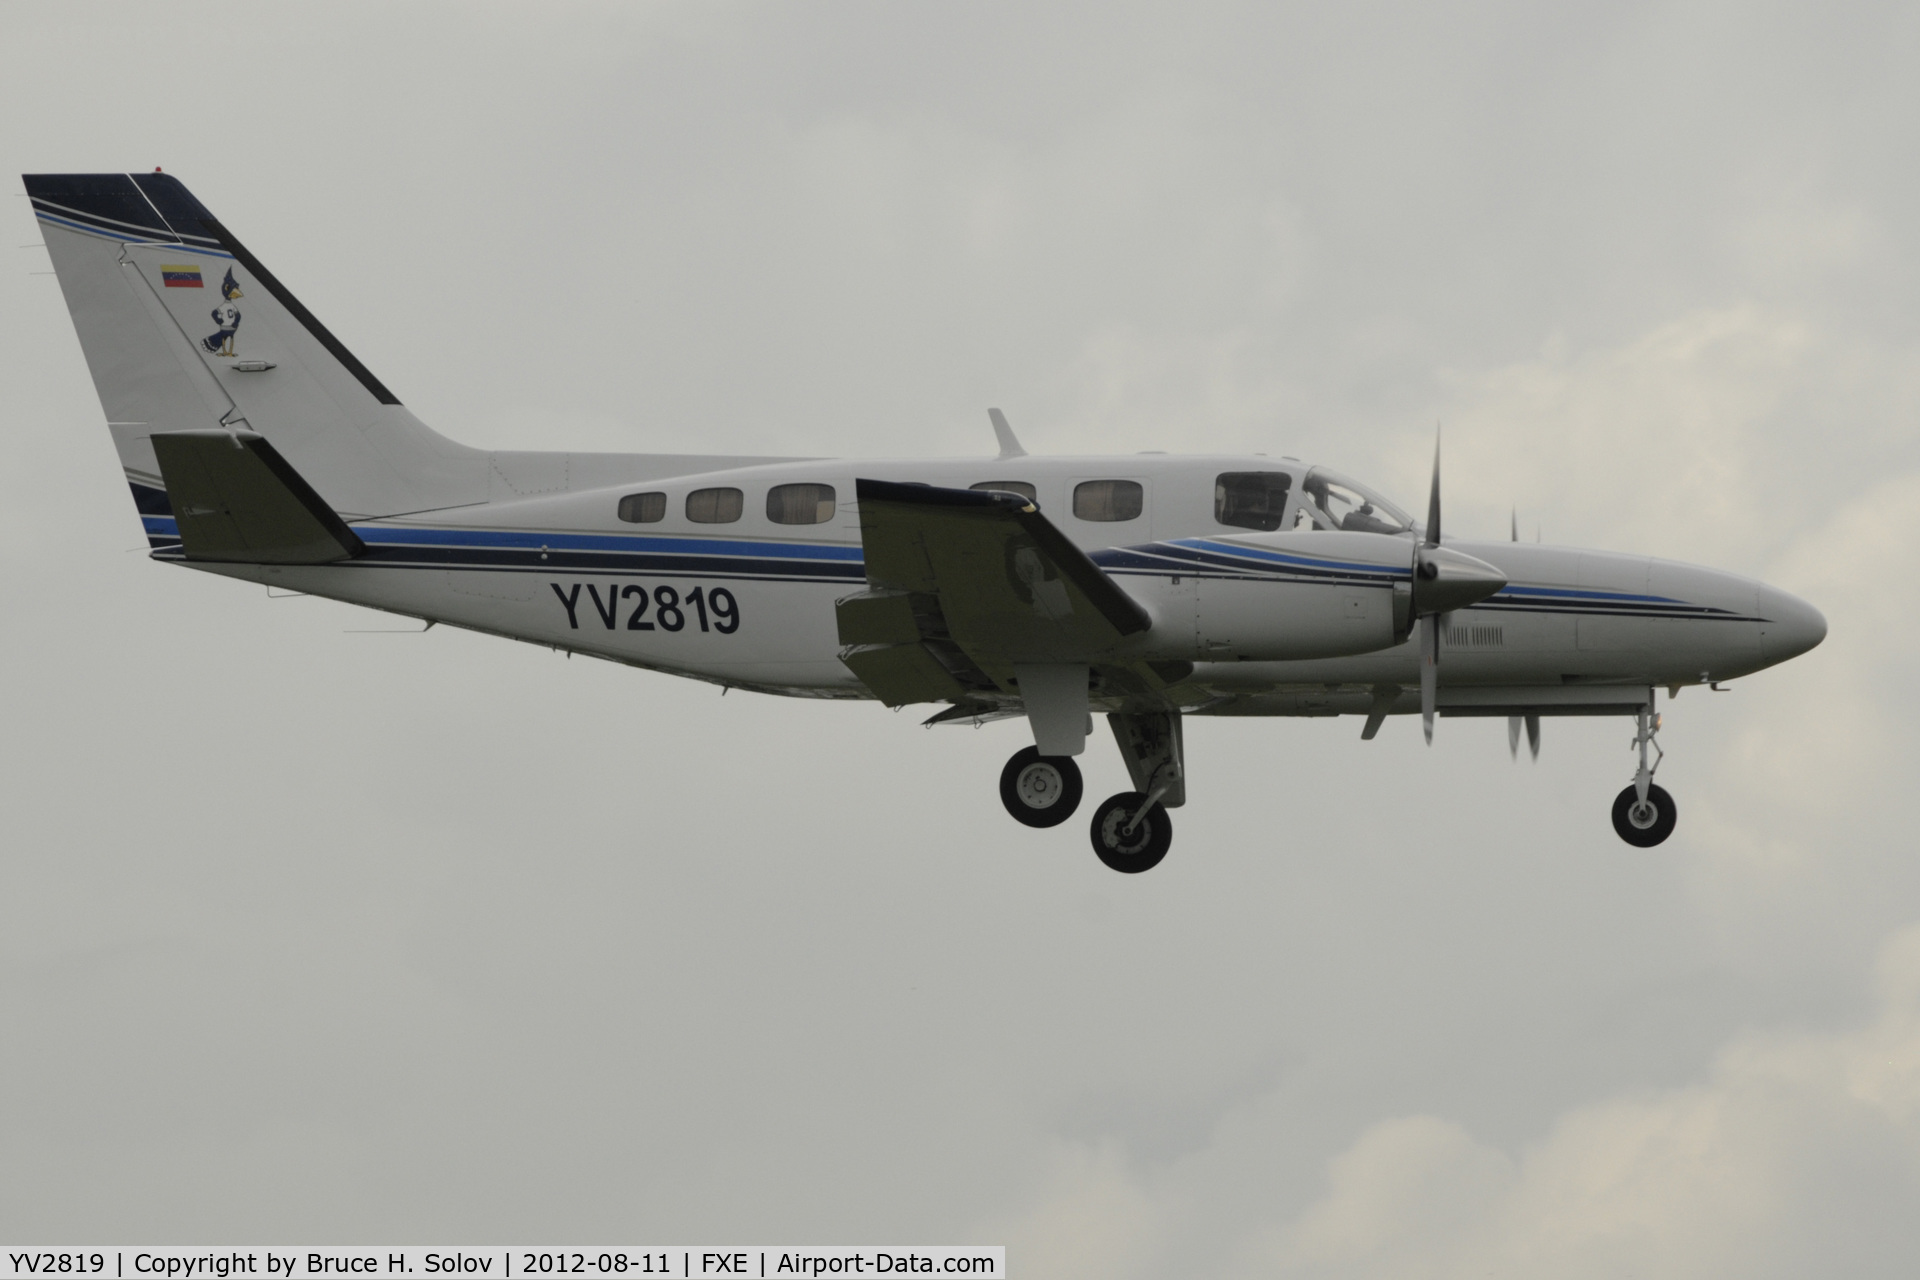 YV2819, Cessna 441 C/N 000000, on approach to Runway 8